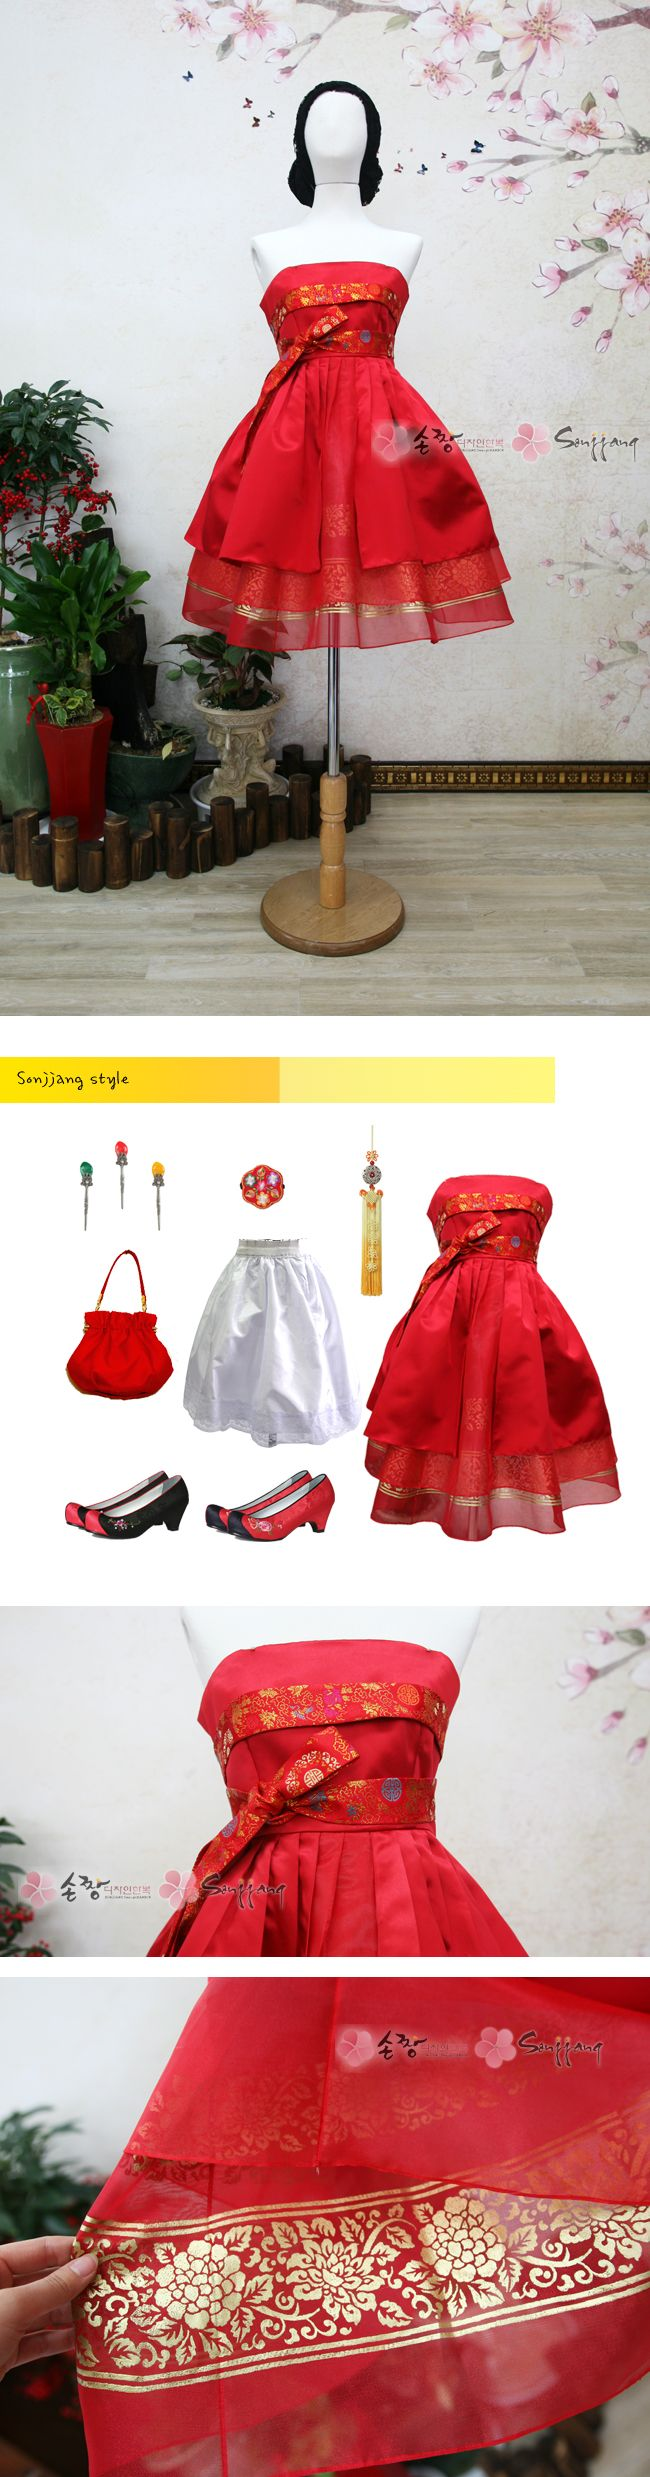 HANBOK - Traditional and yet Oh-So-Cute